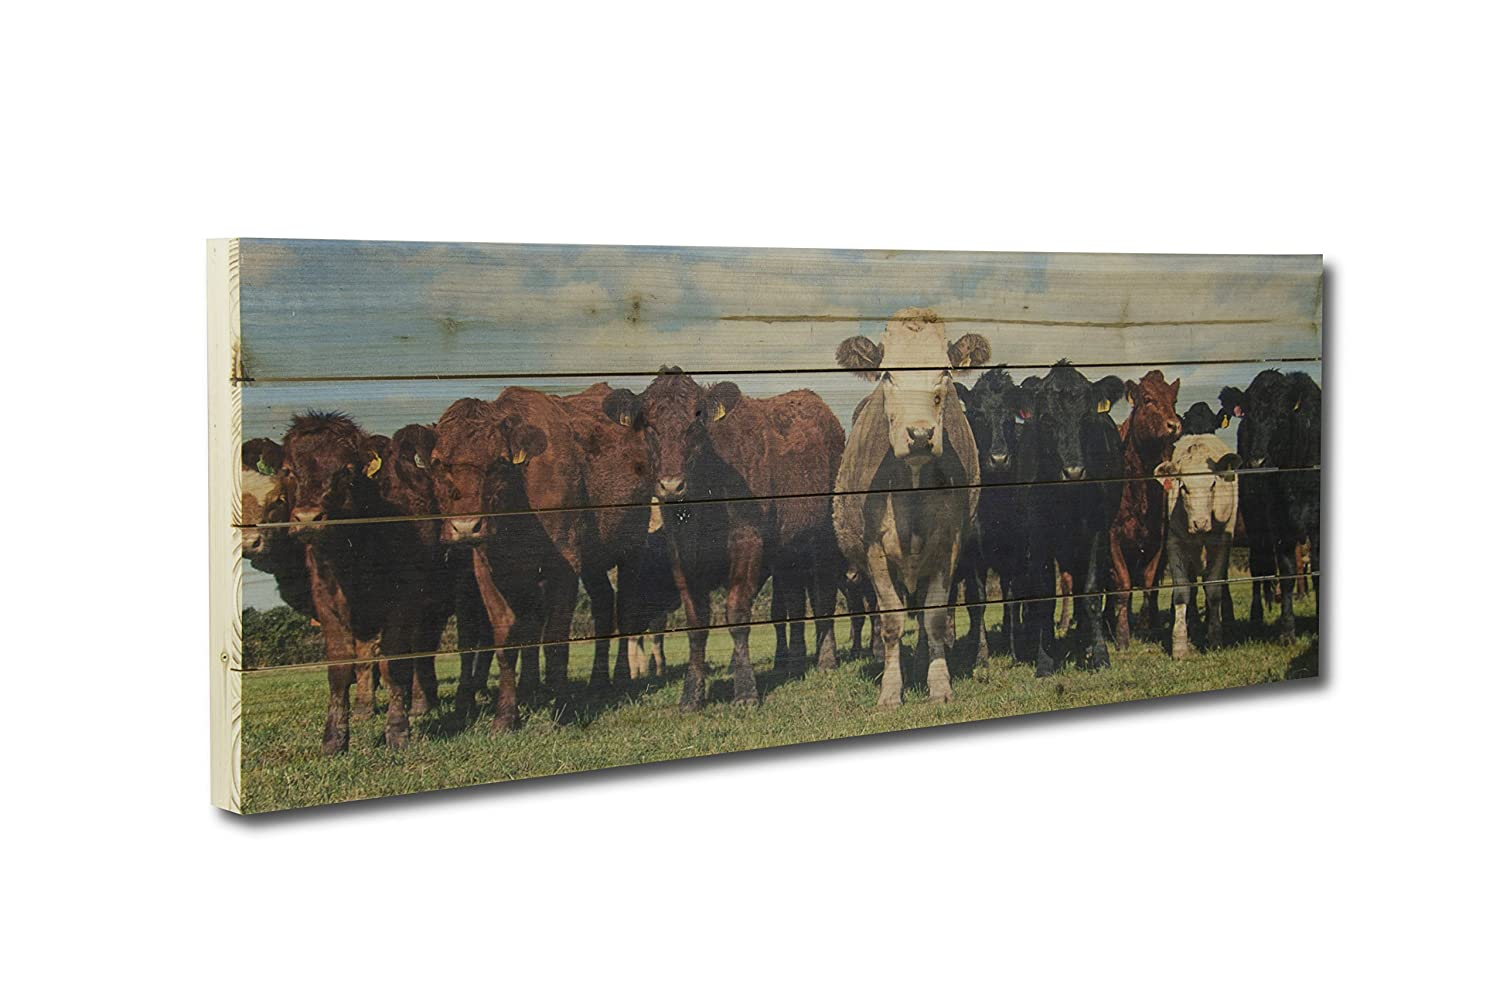 Gallery 57 Cow Herd on Planked Wood